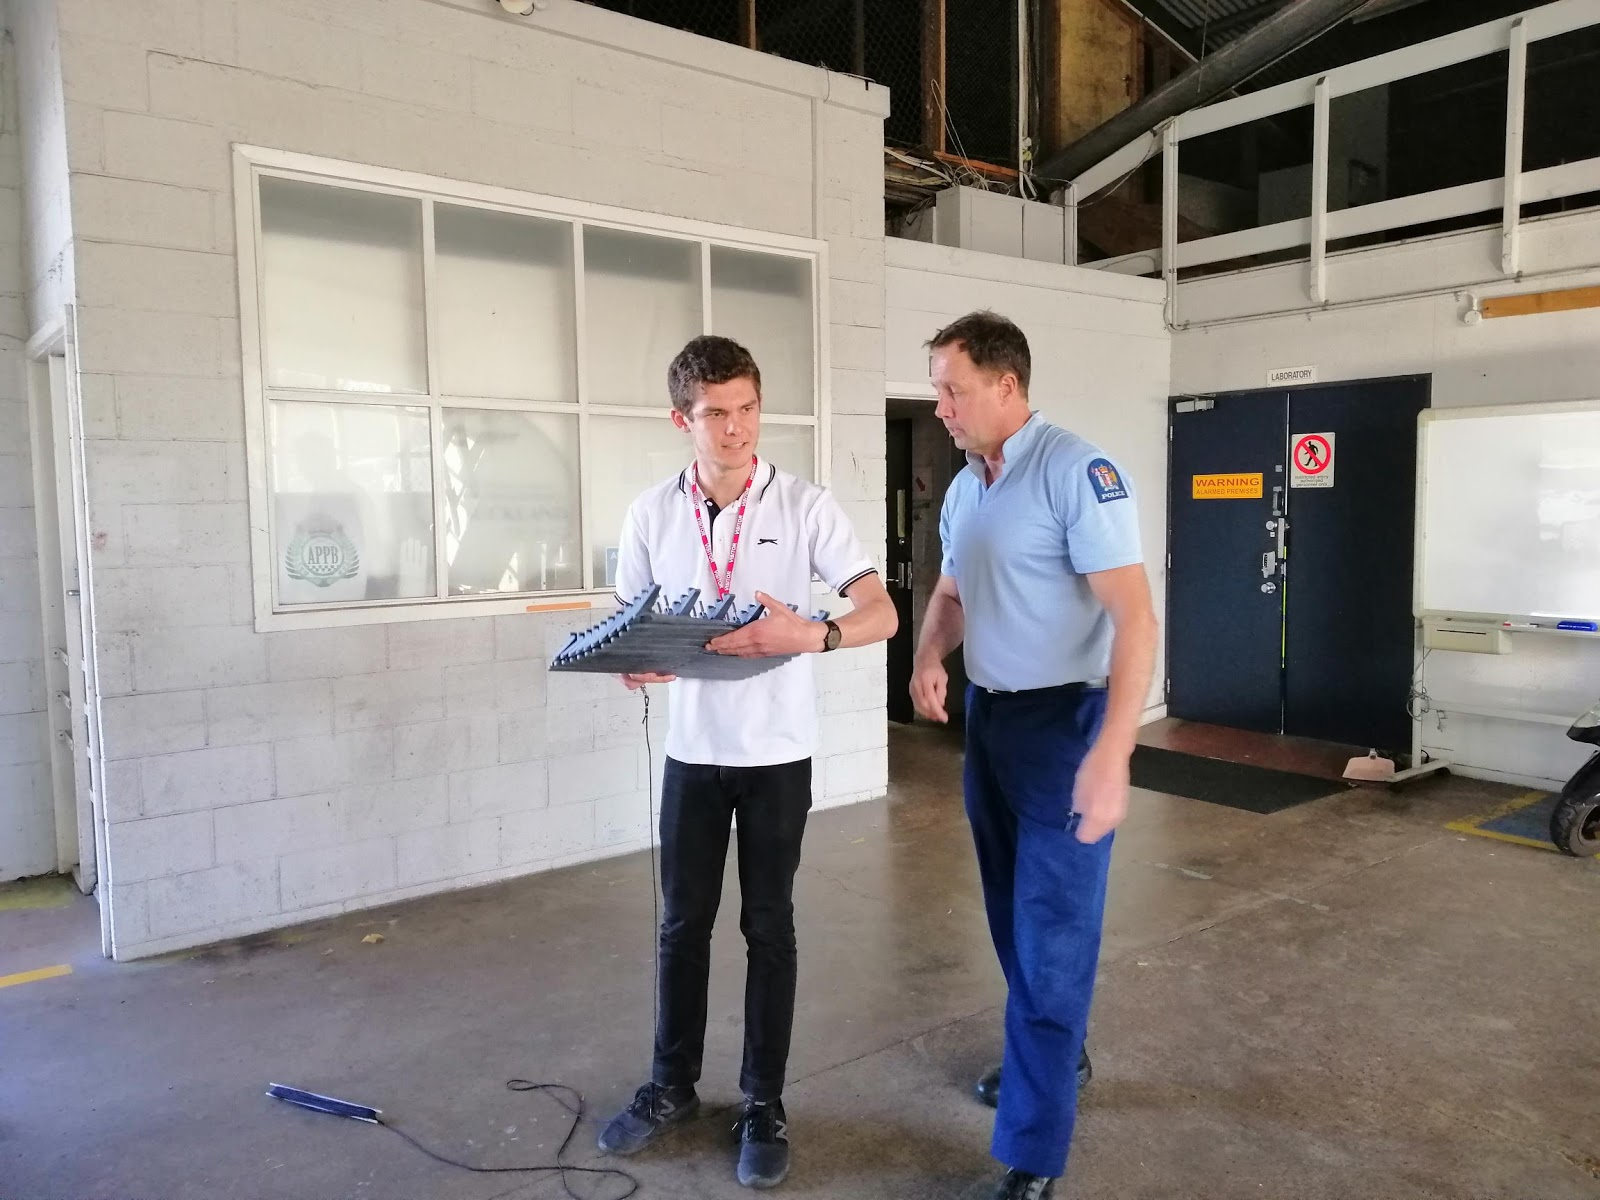 Snr Sergeant Rod Salt gives Dathan Barkhausen the run-down on laying  road spikes at Auckland's Harbour Bridge Police Station.